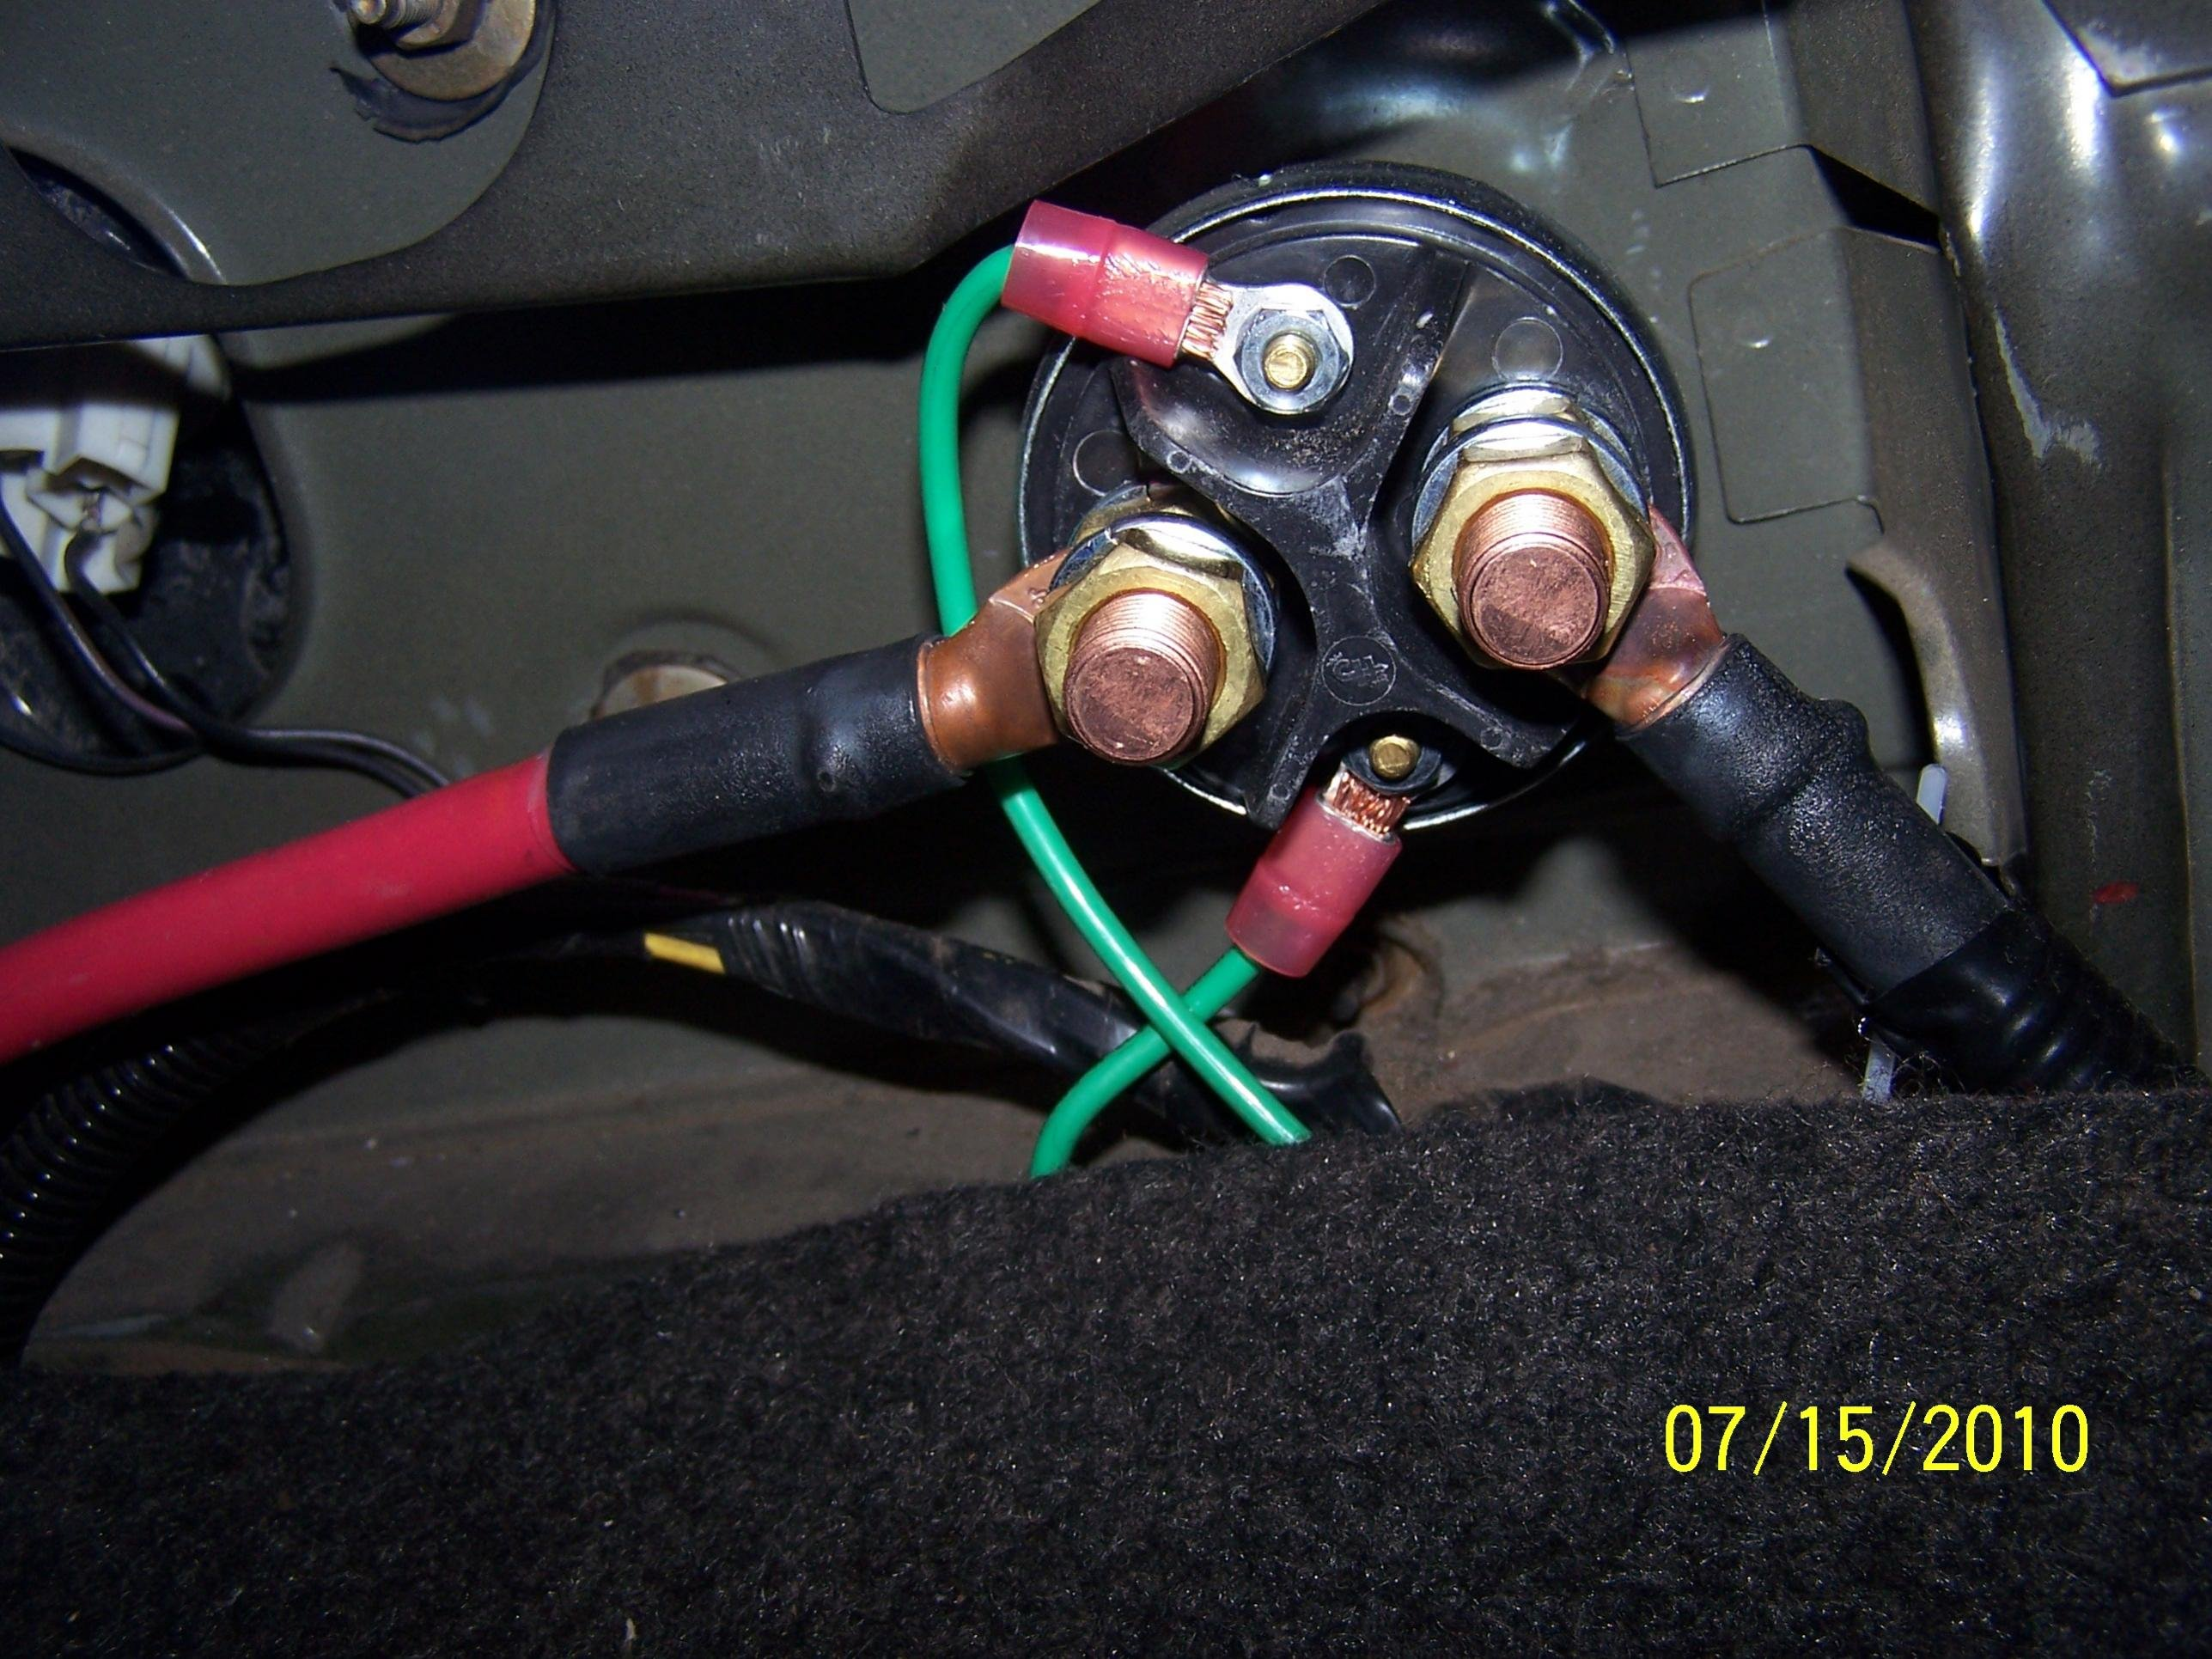 Wiring A Switch To Starter Solenoid On Dodge Library Infiniti Remote Diagram Battery Relocation W 4 Post Kill Install Pics 100 0132